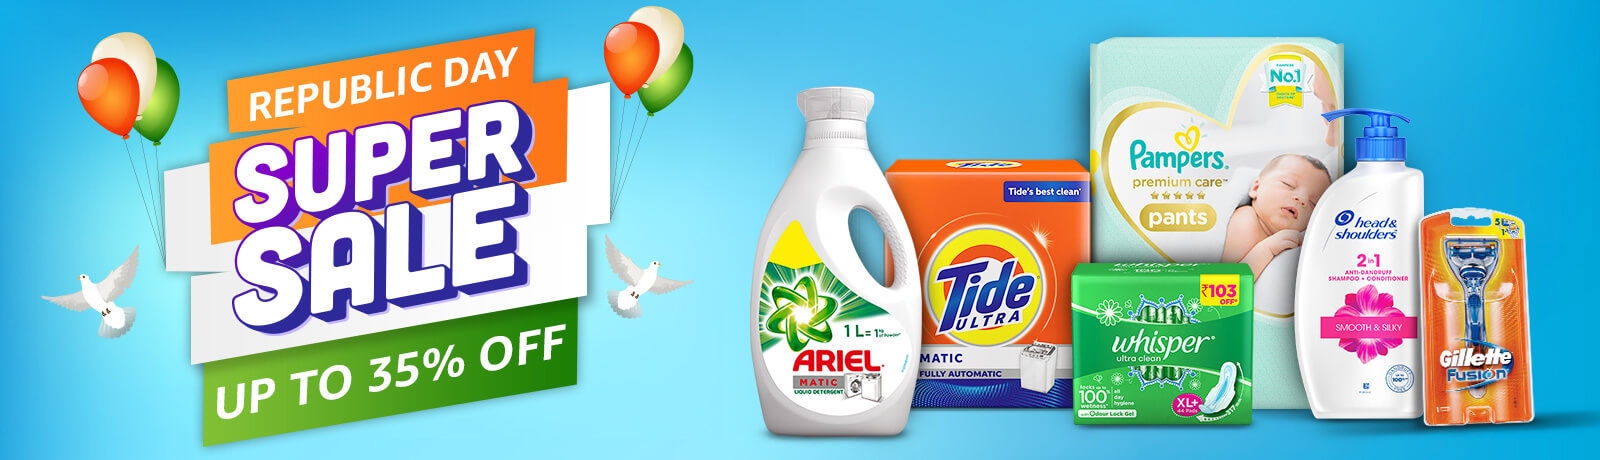 Get upto 35% off on Republic day Super Sale offers